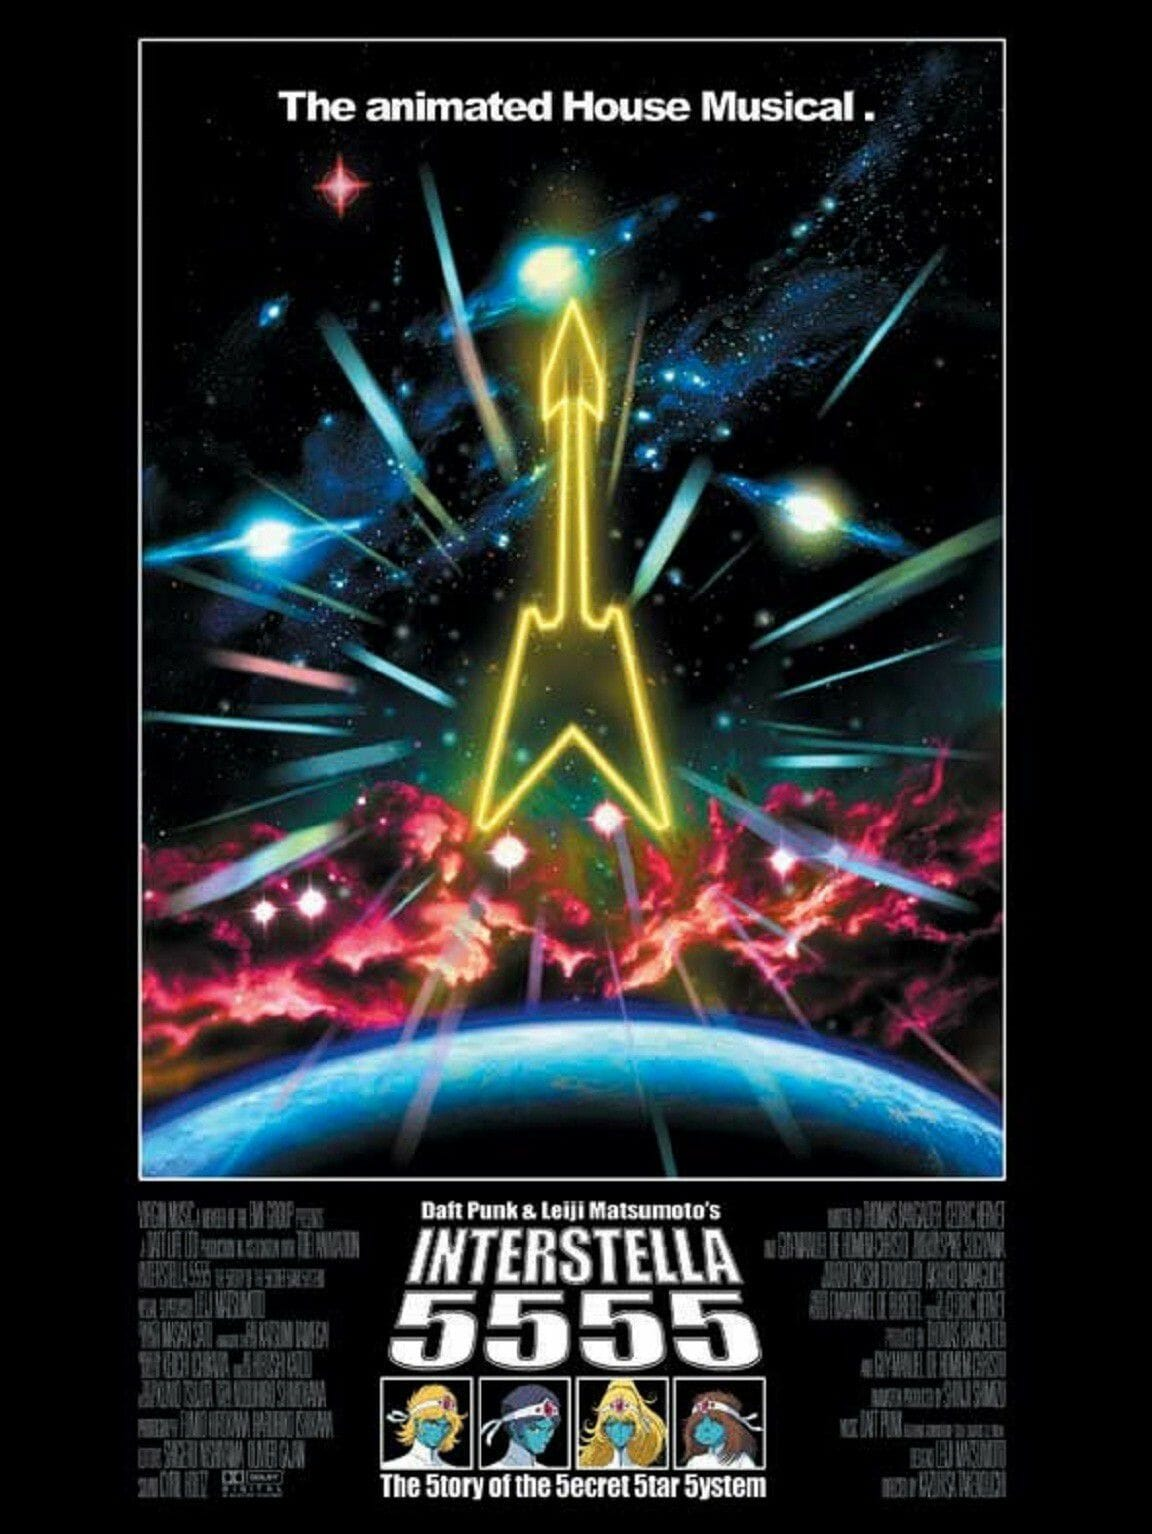 Interstella 5555 : The Story of the Secret Star System